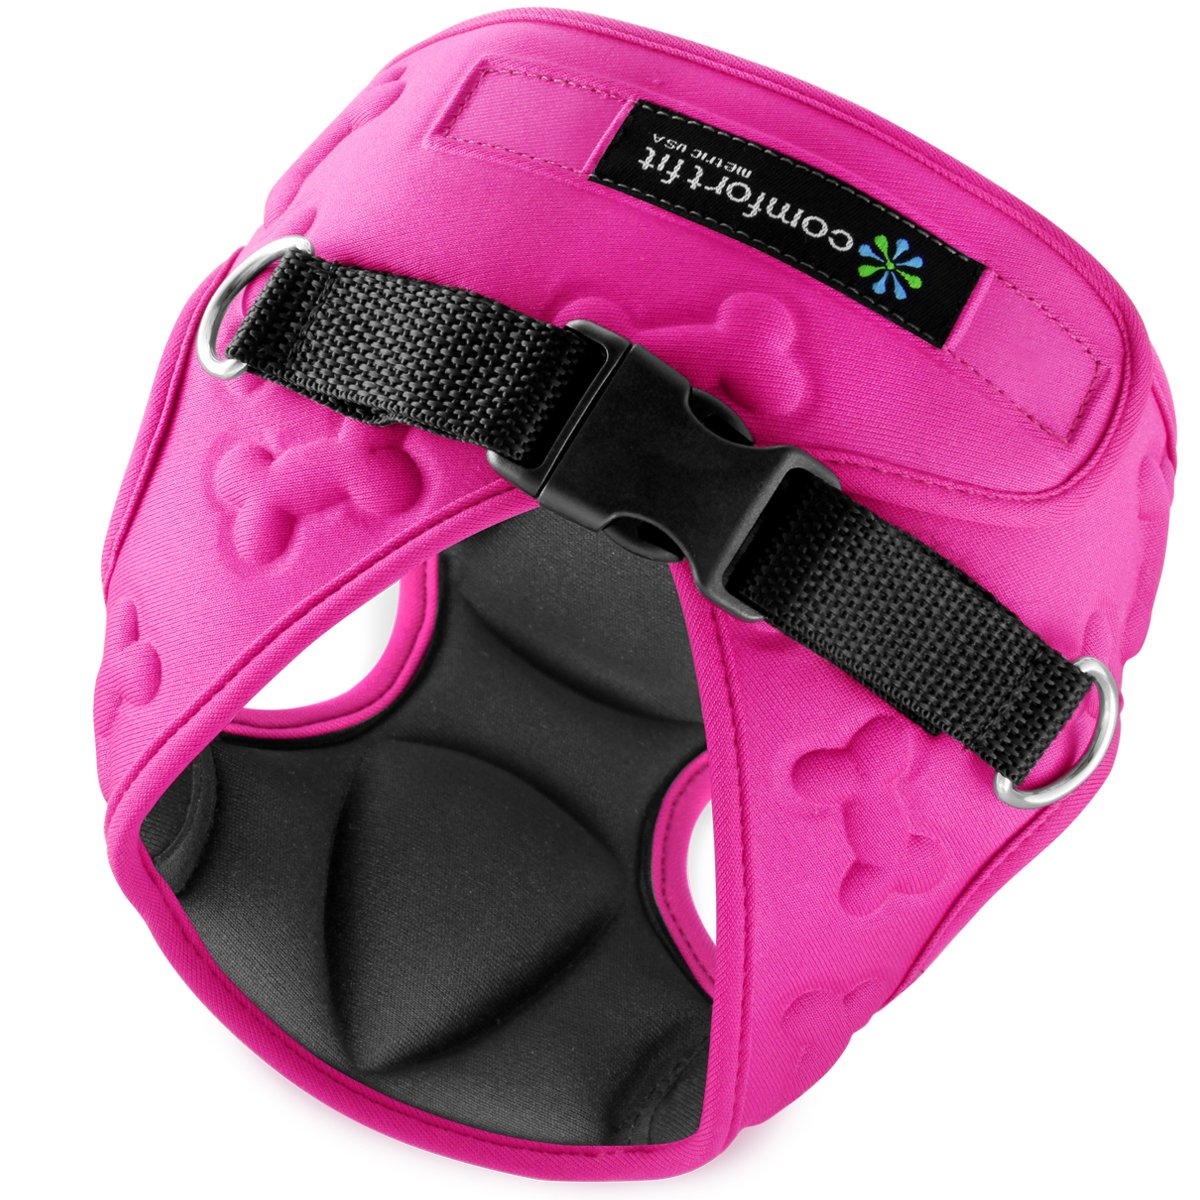 Easy to Put on Take Off Small Dog Harnesses Our Small Dog Harness Vest has Padded Interior Exterior Cushioning Ensuring Your Dog is Snug Comfortable ! (XX-Small, Pink)